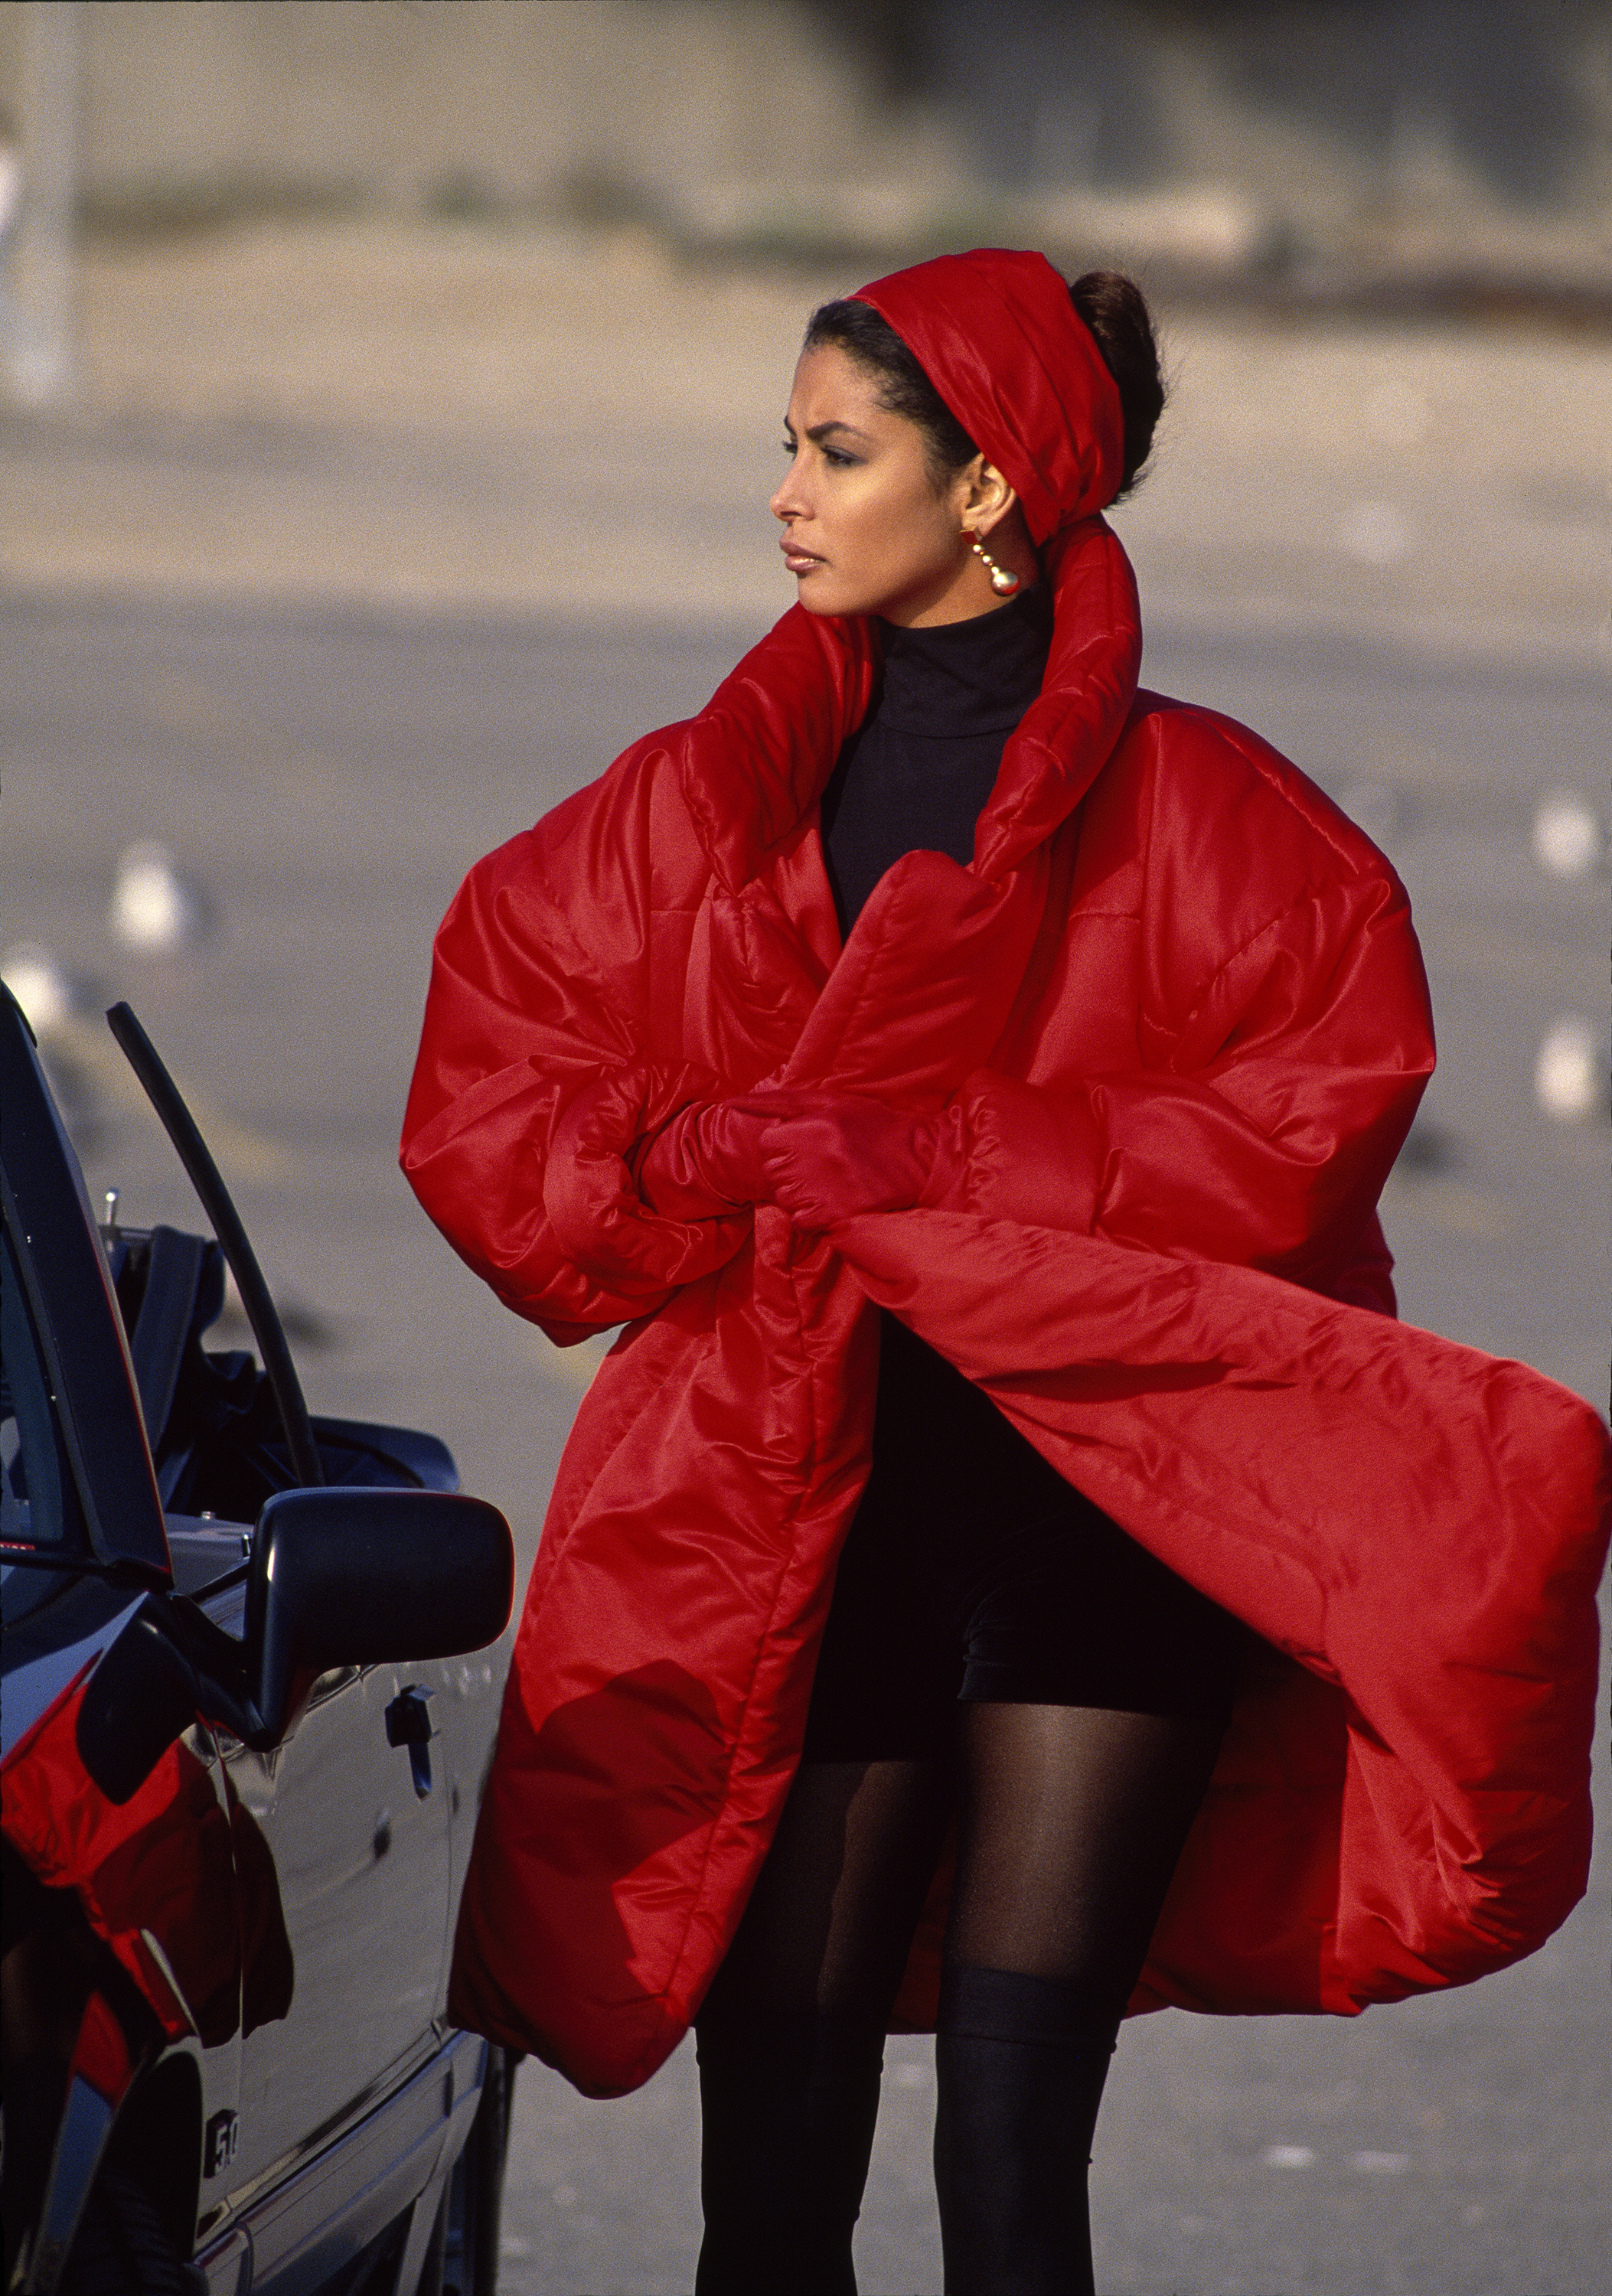 A woman wears a puffy red coat, looking off to the horizon.